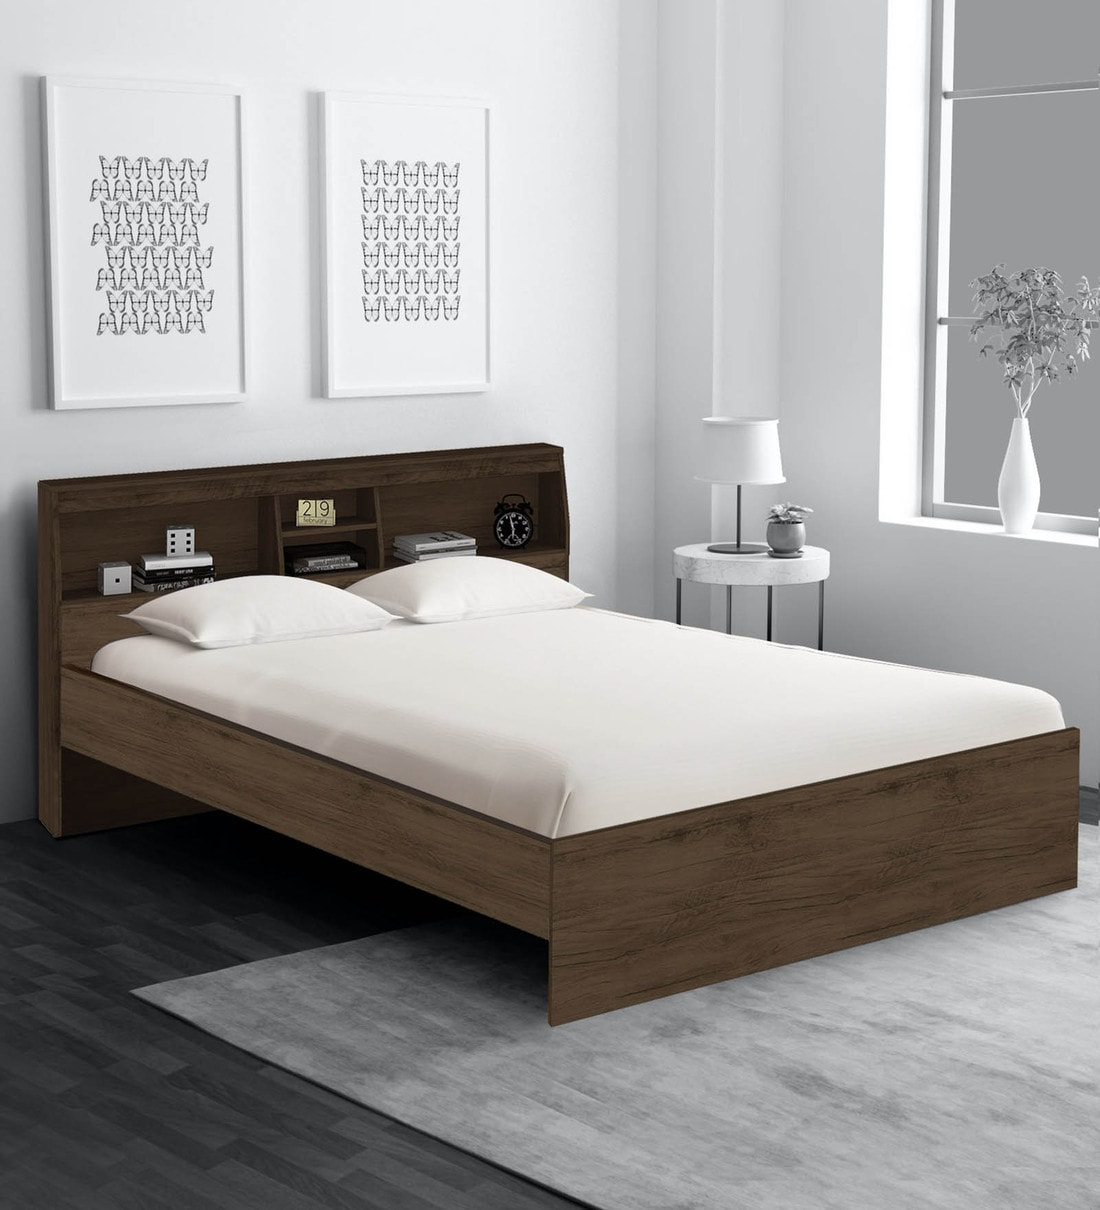 Picture of: Buy Okinawa Queen Size Bed With Headboard Storage In Coffee Finish By Mintwud Online Modern Queen Size Beds Beds Furniture Pepperfry Product